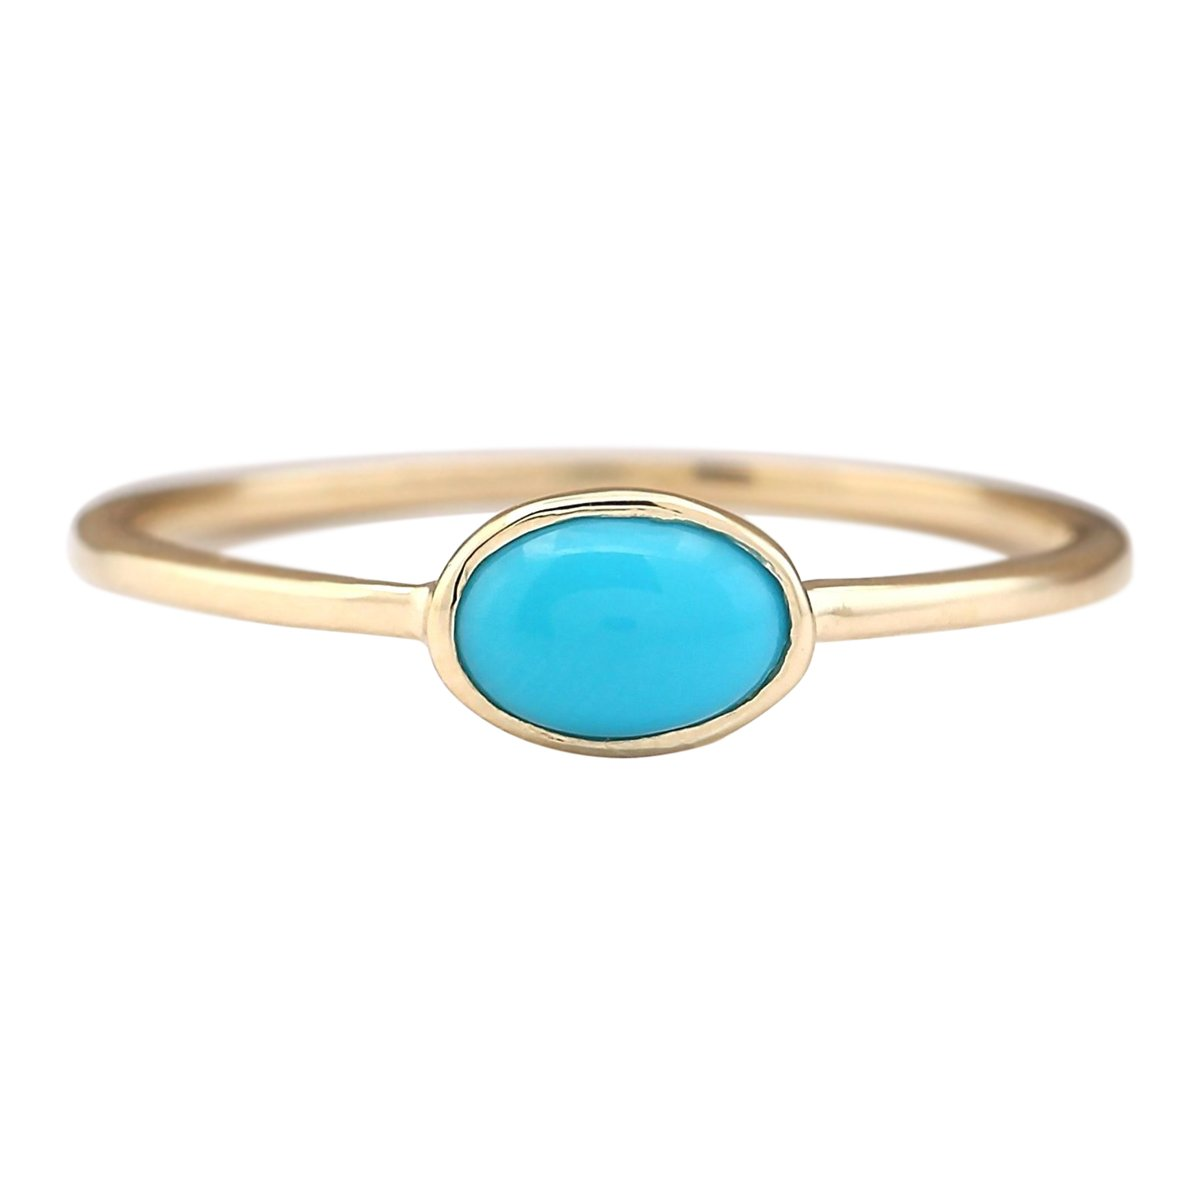 1 Carat Natural Blue Turquoise 14K Yellow Gold Solitaire Promise Ring for Women